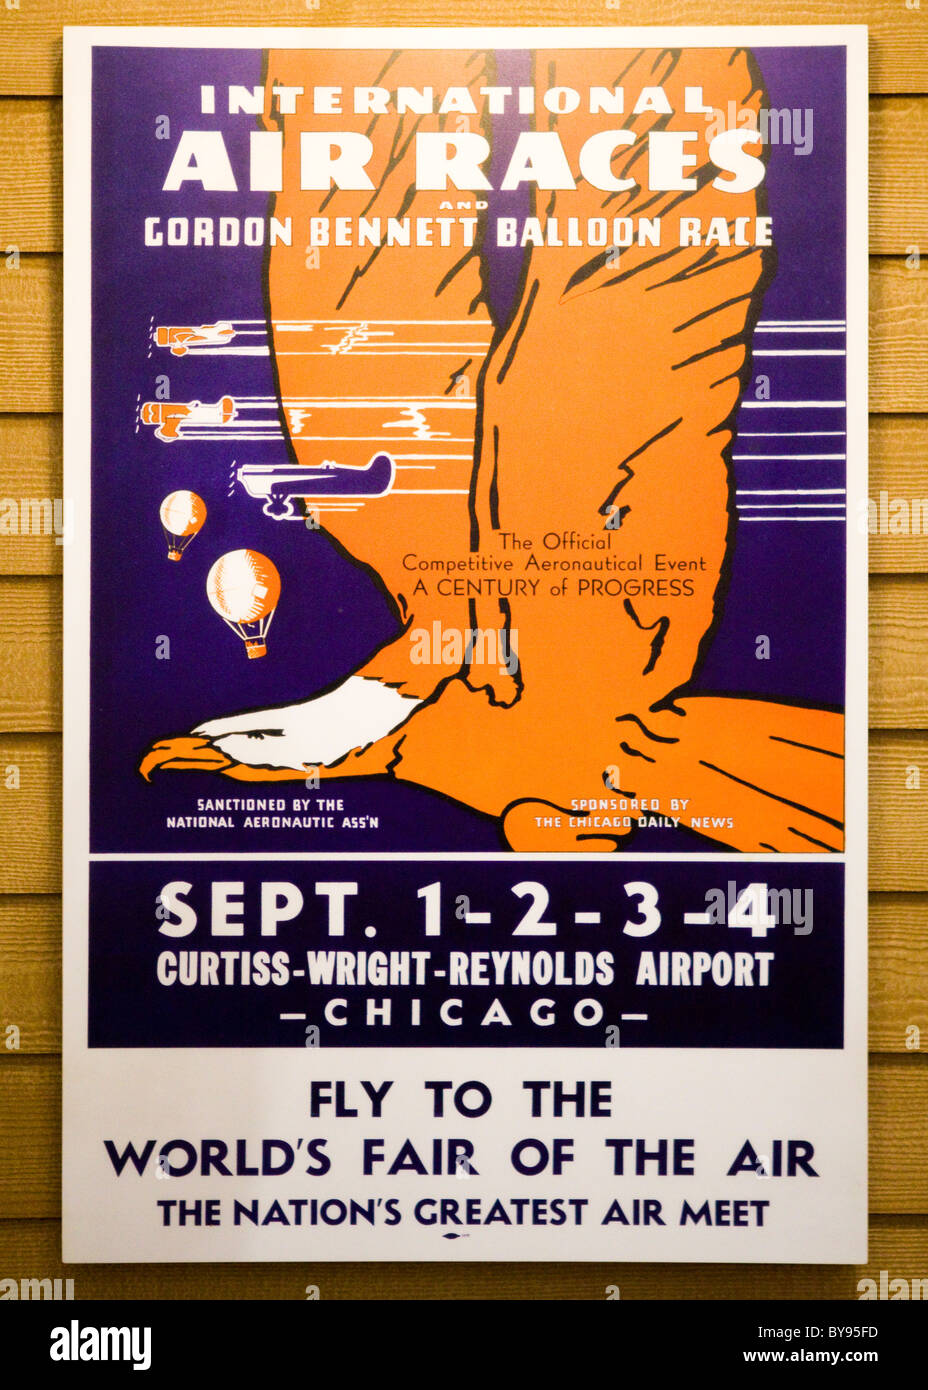 Antique early 20th century International Air Races poster - USA - Stock Image